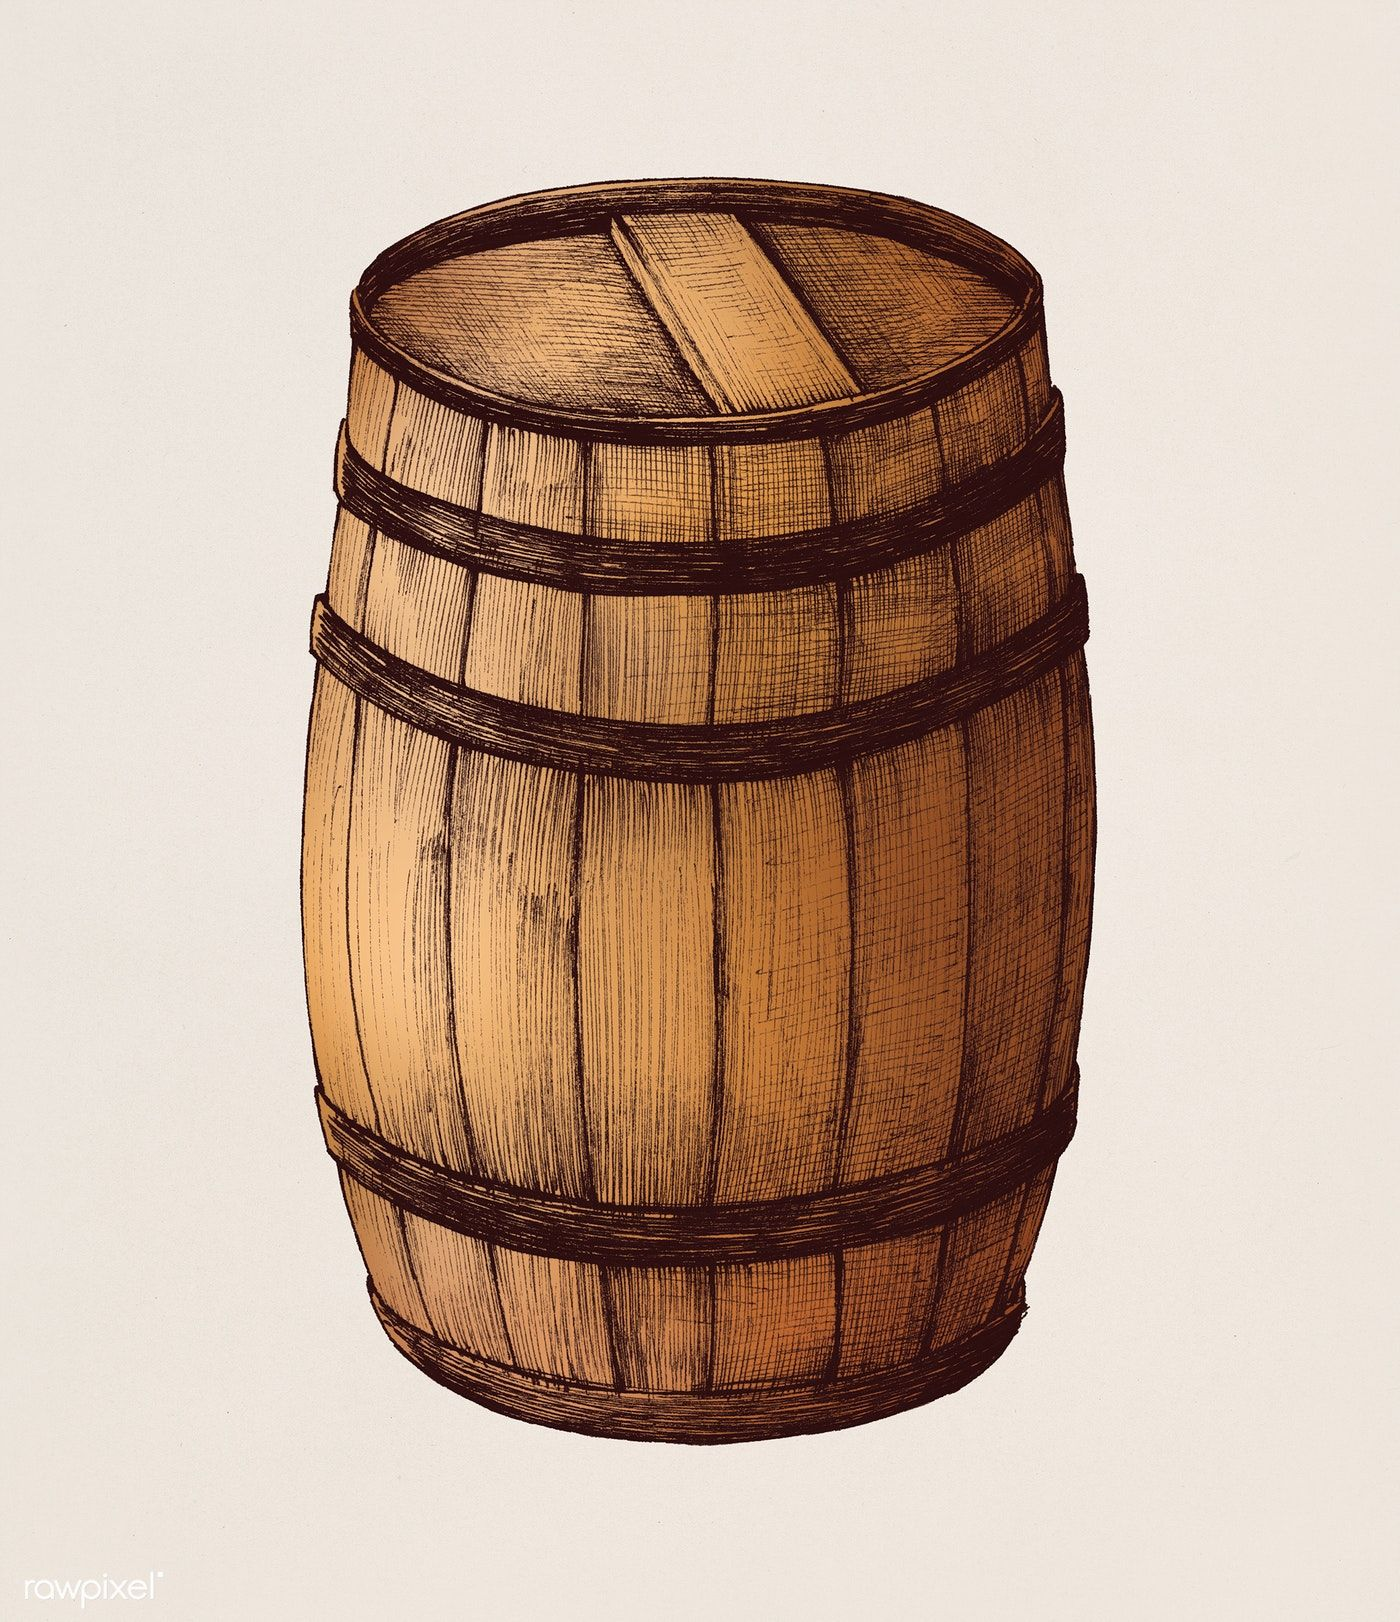 Hand Drawn Wooden Barrel Free Image By Rawpixel Com Wooden Barrel How To Draw Hands Barrel